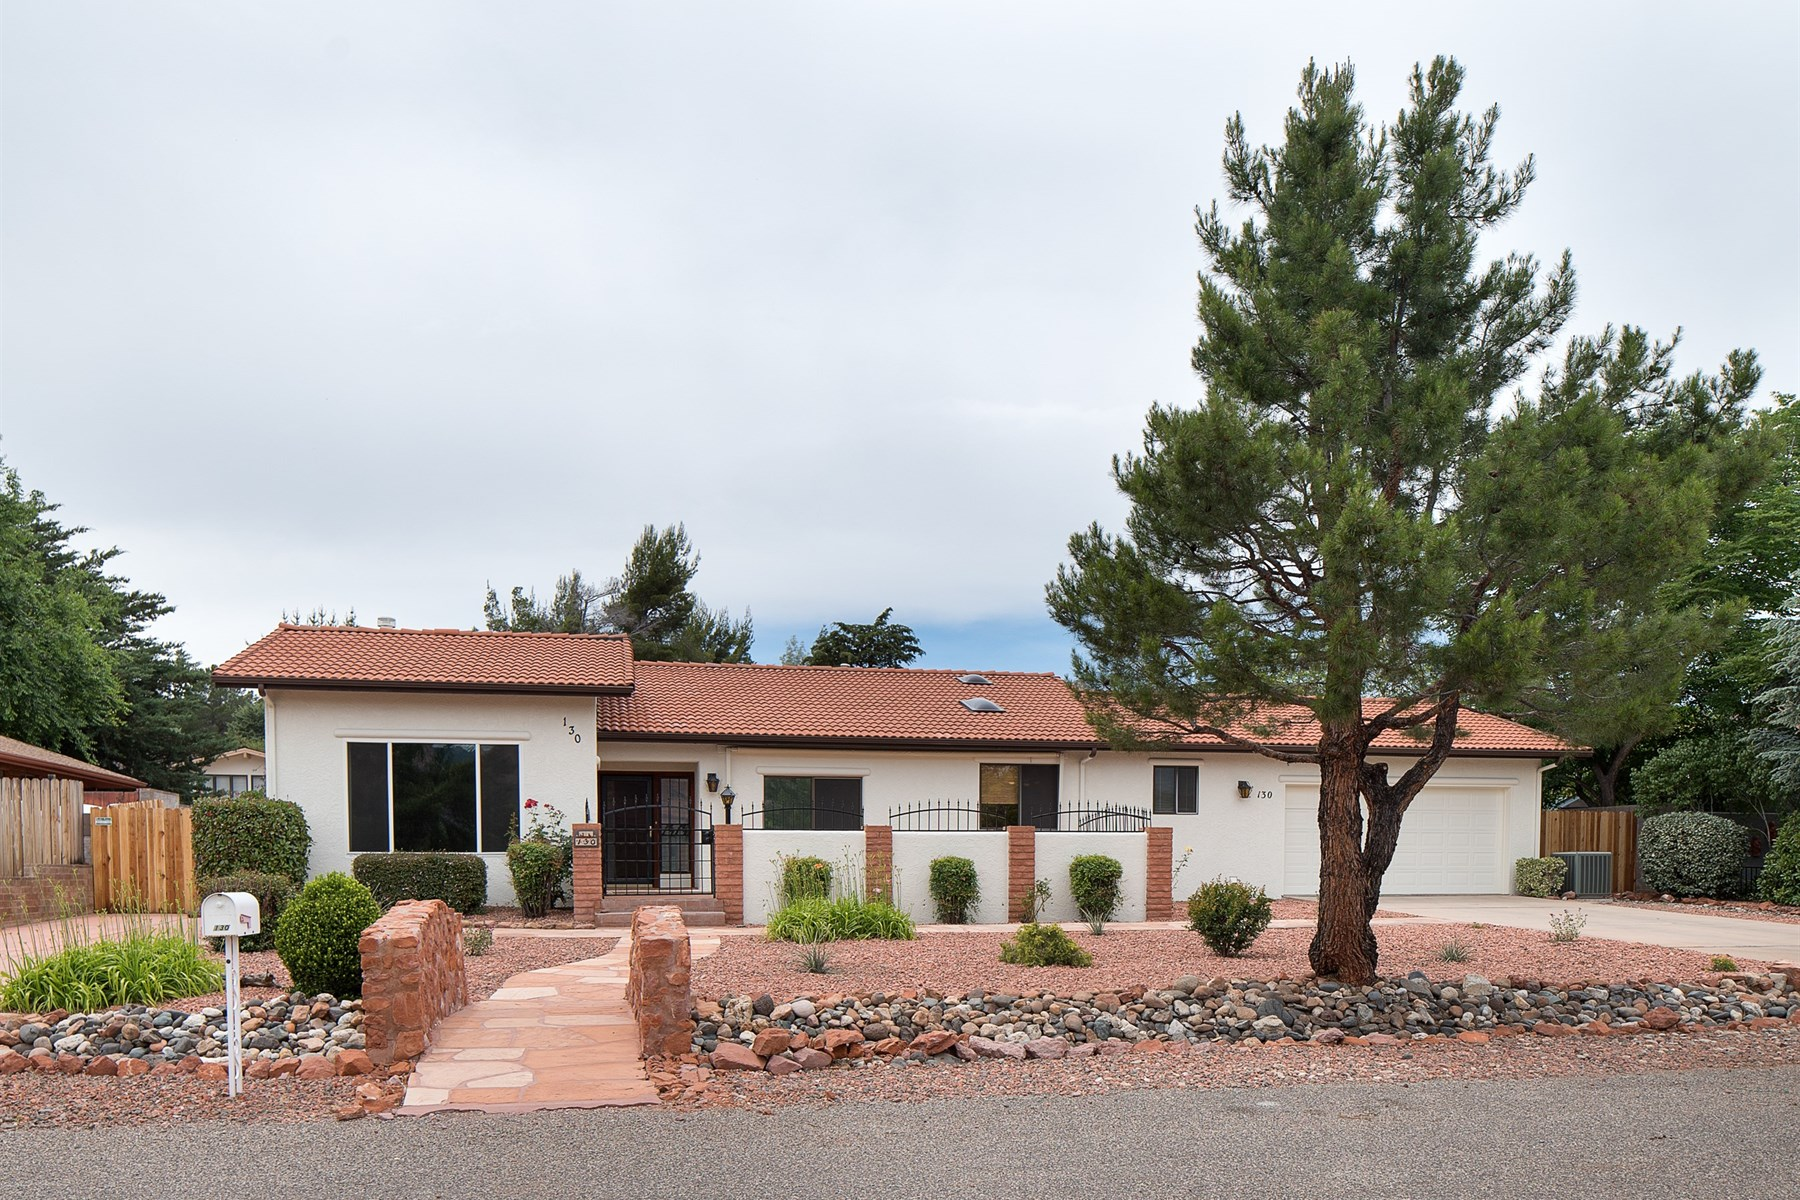 Single Family Home for Sale at A beautiful, updated home in a beautiful neighborhood 130 Tonto Rd Sedona, Arizona 86336 United States